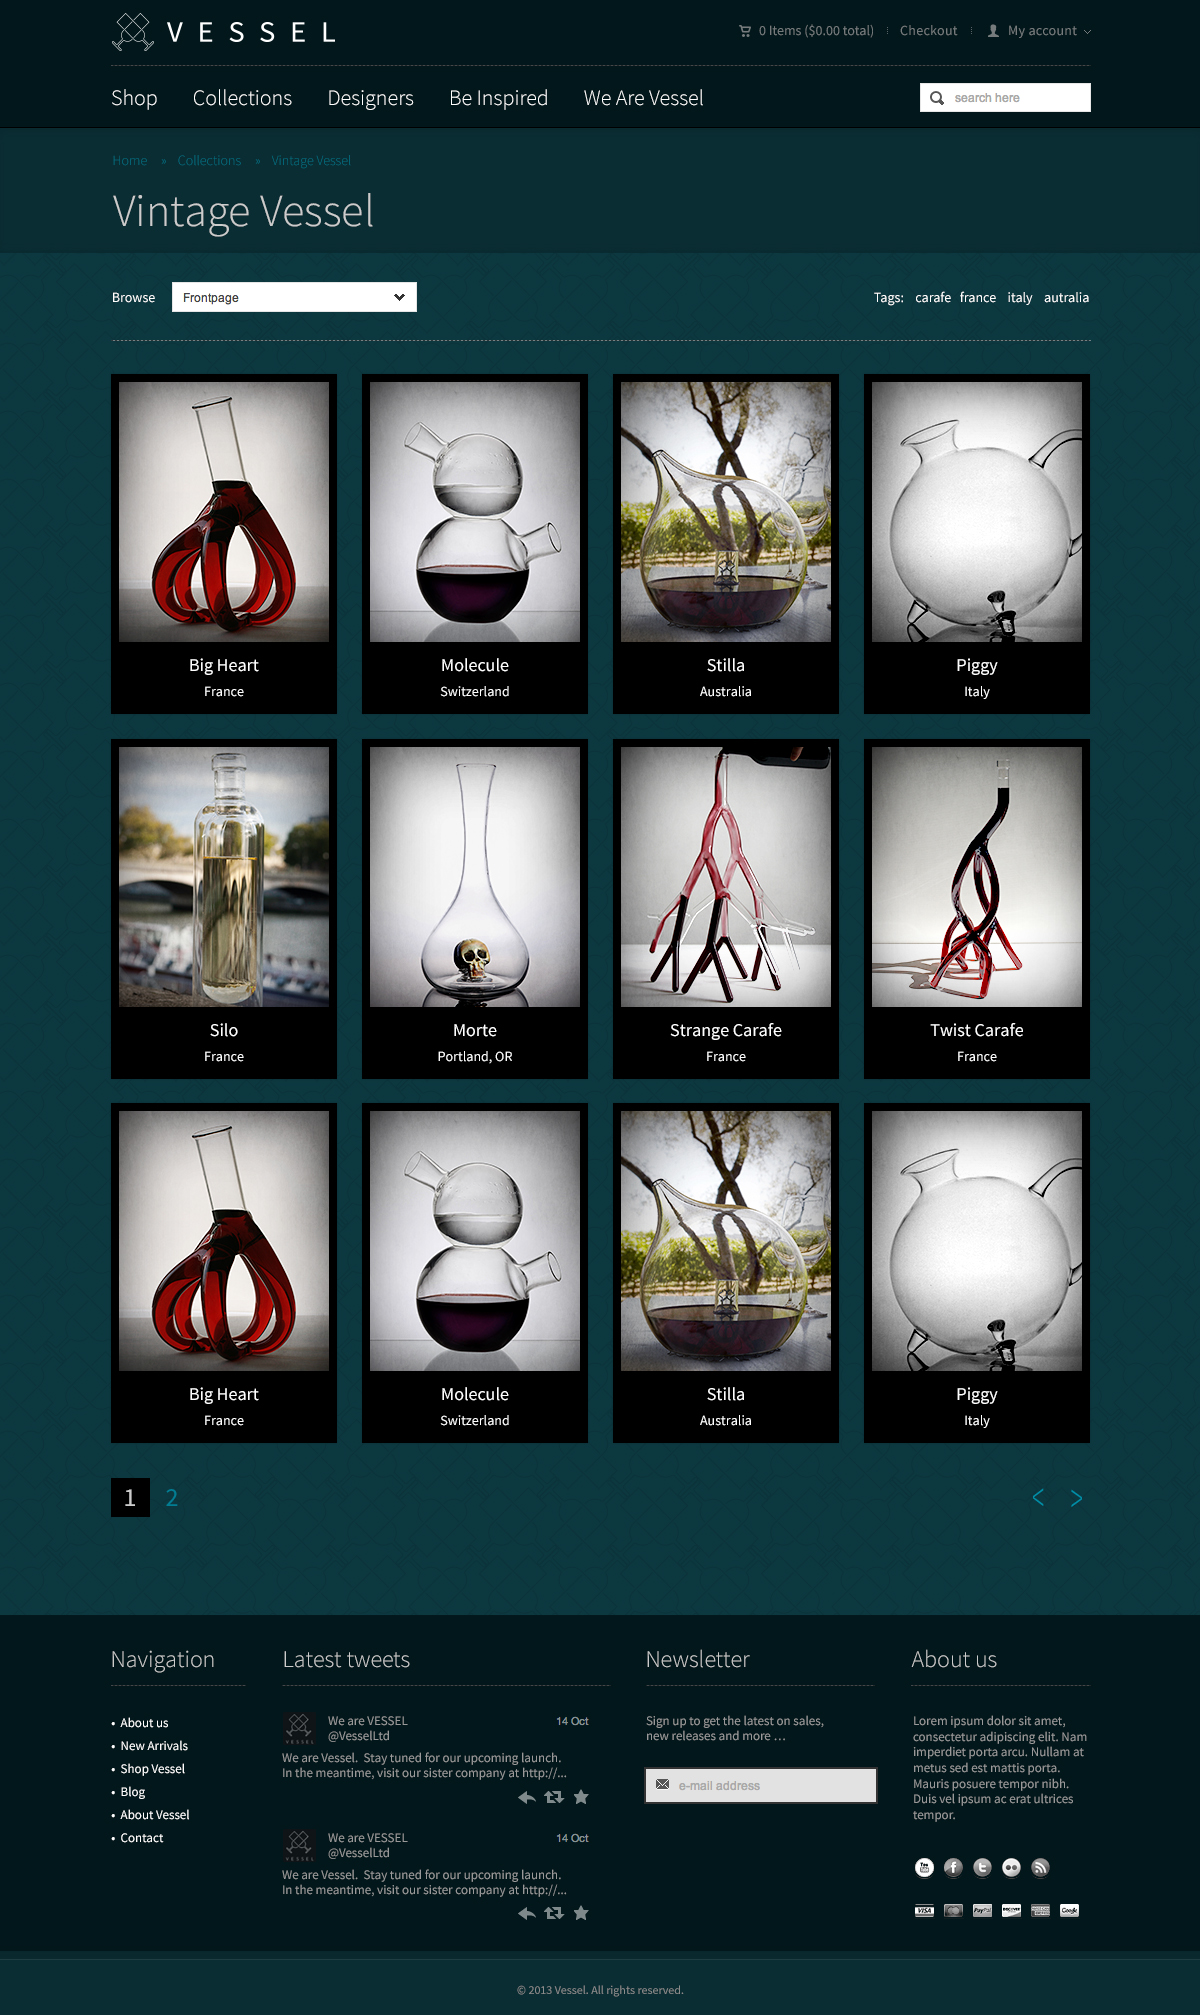 Vessel_Collection